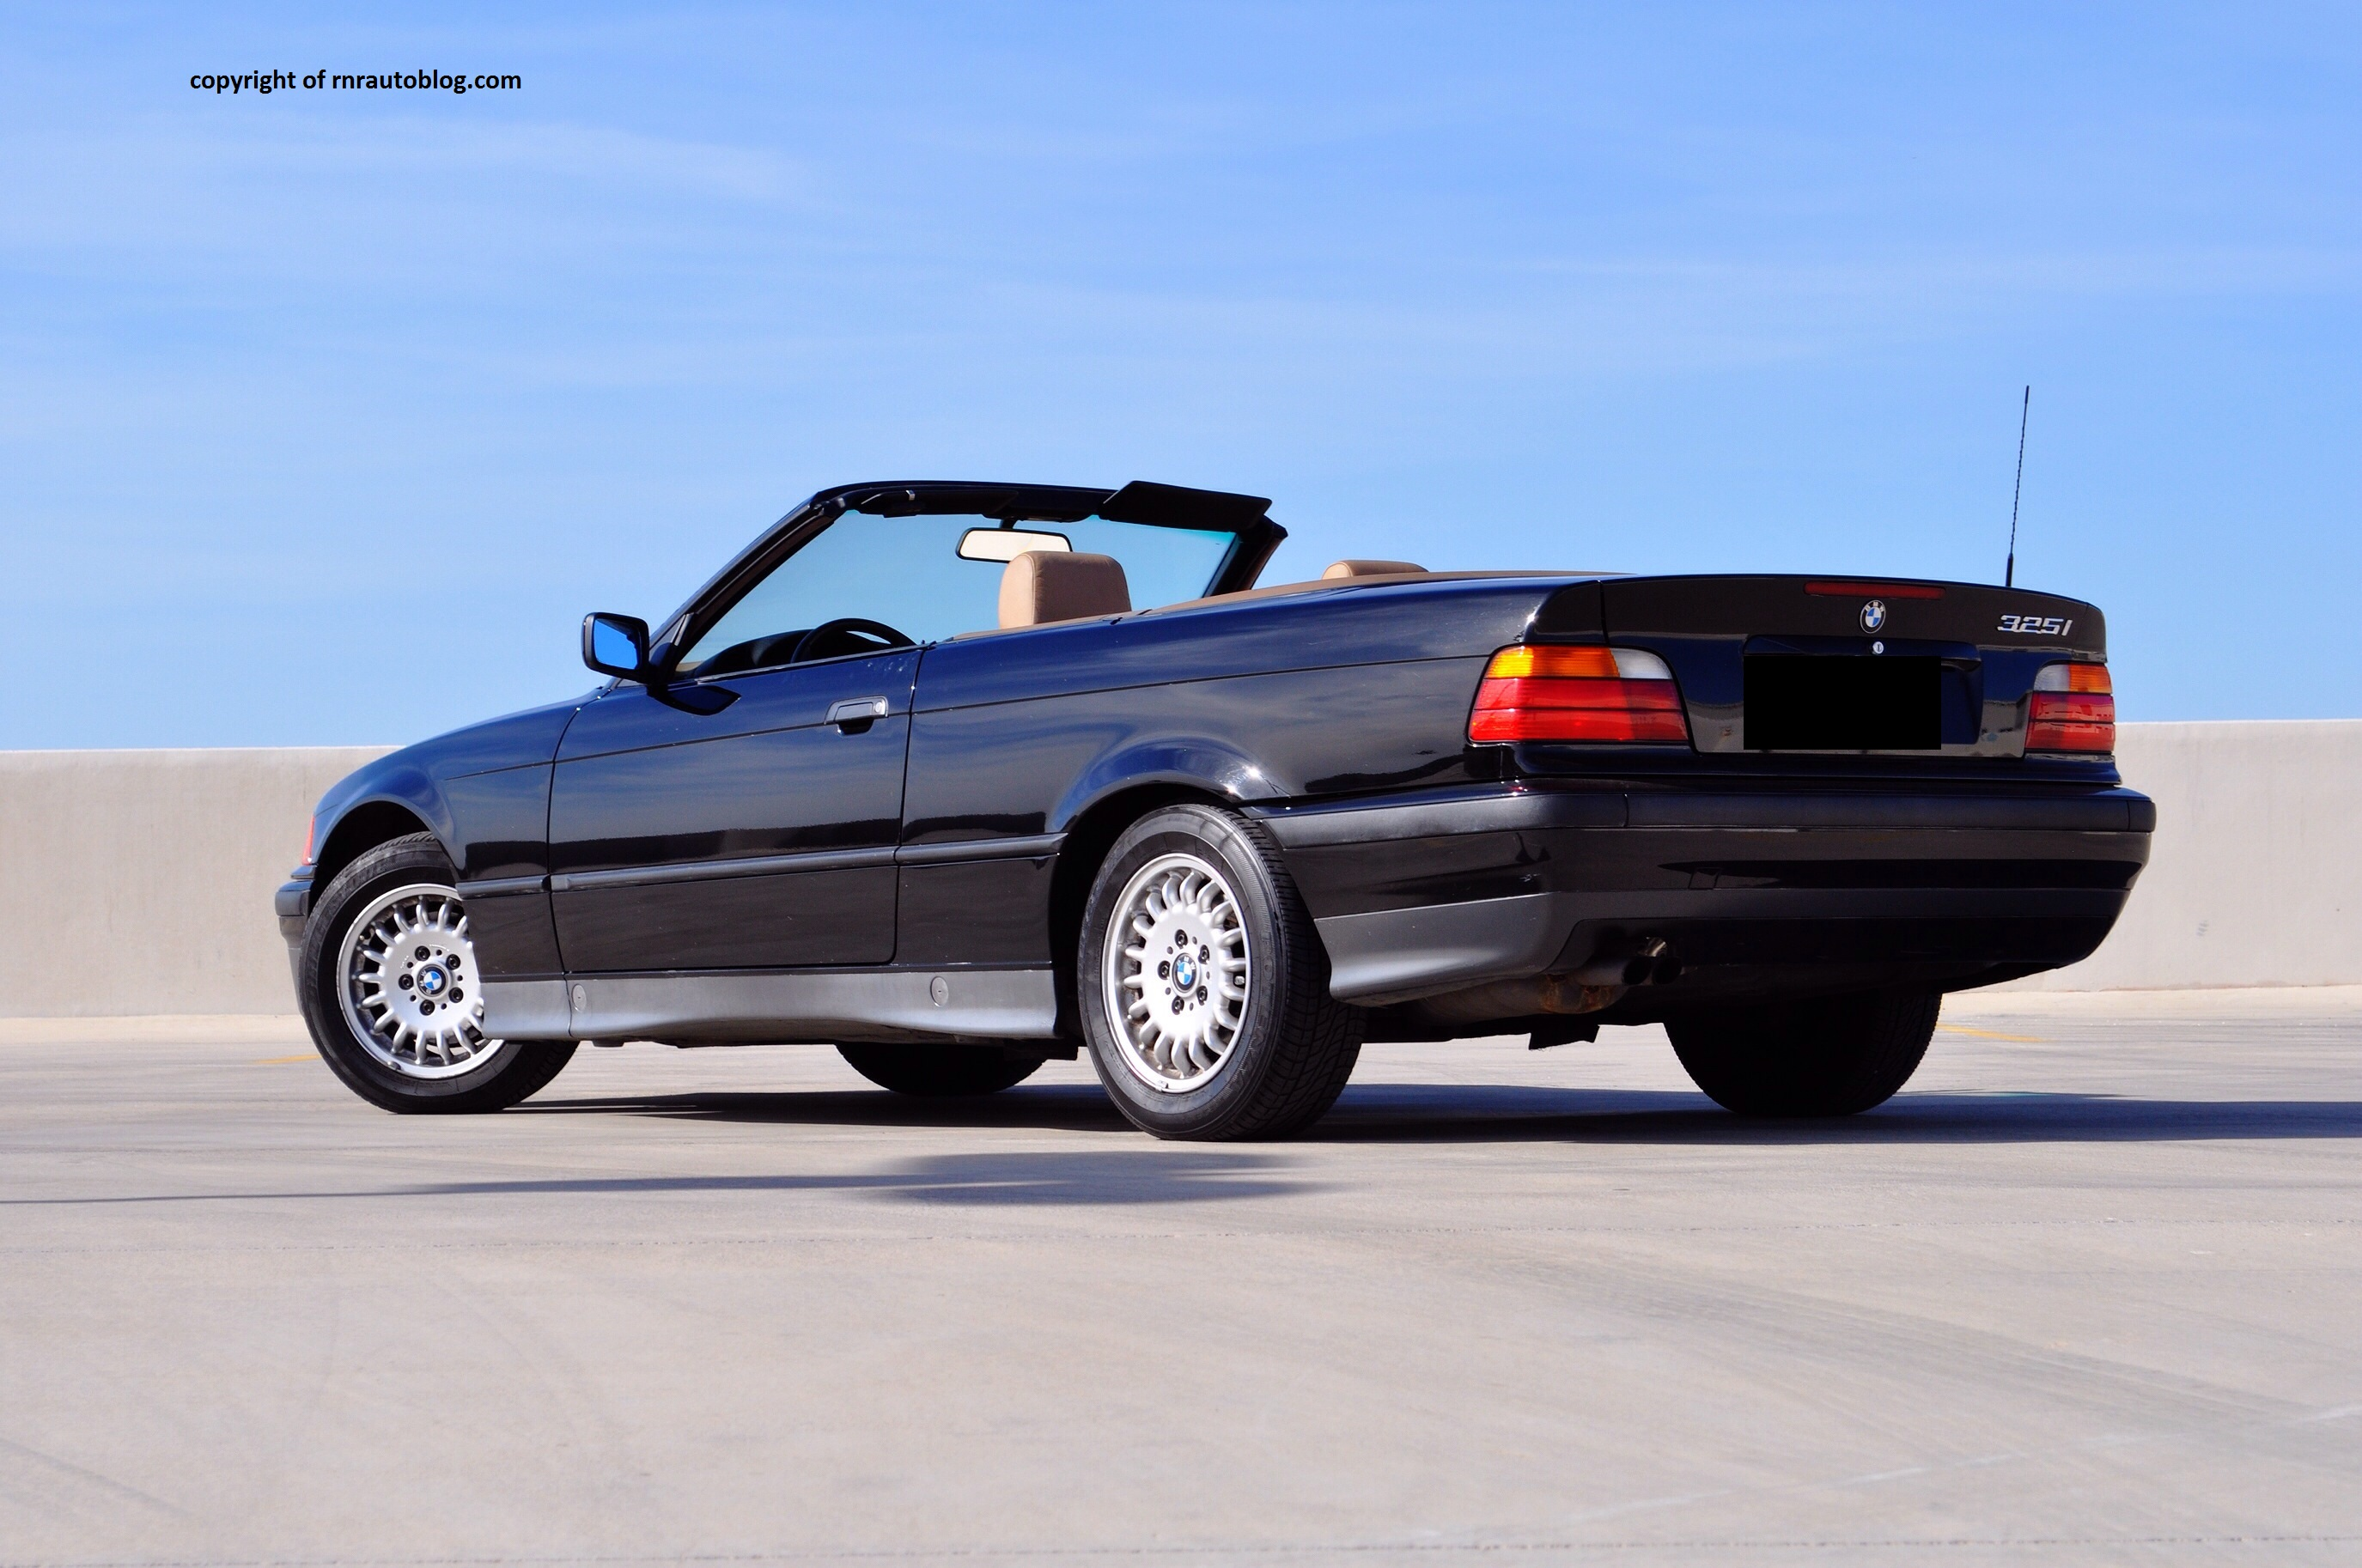 1994 bmw 325i convertible review rnr automotive blog. Black Bedroom Furniture Sets. Home Design Ideas